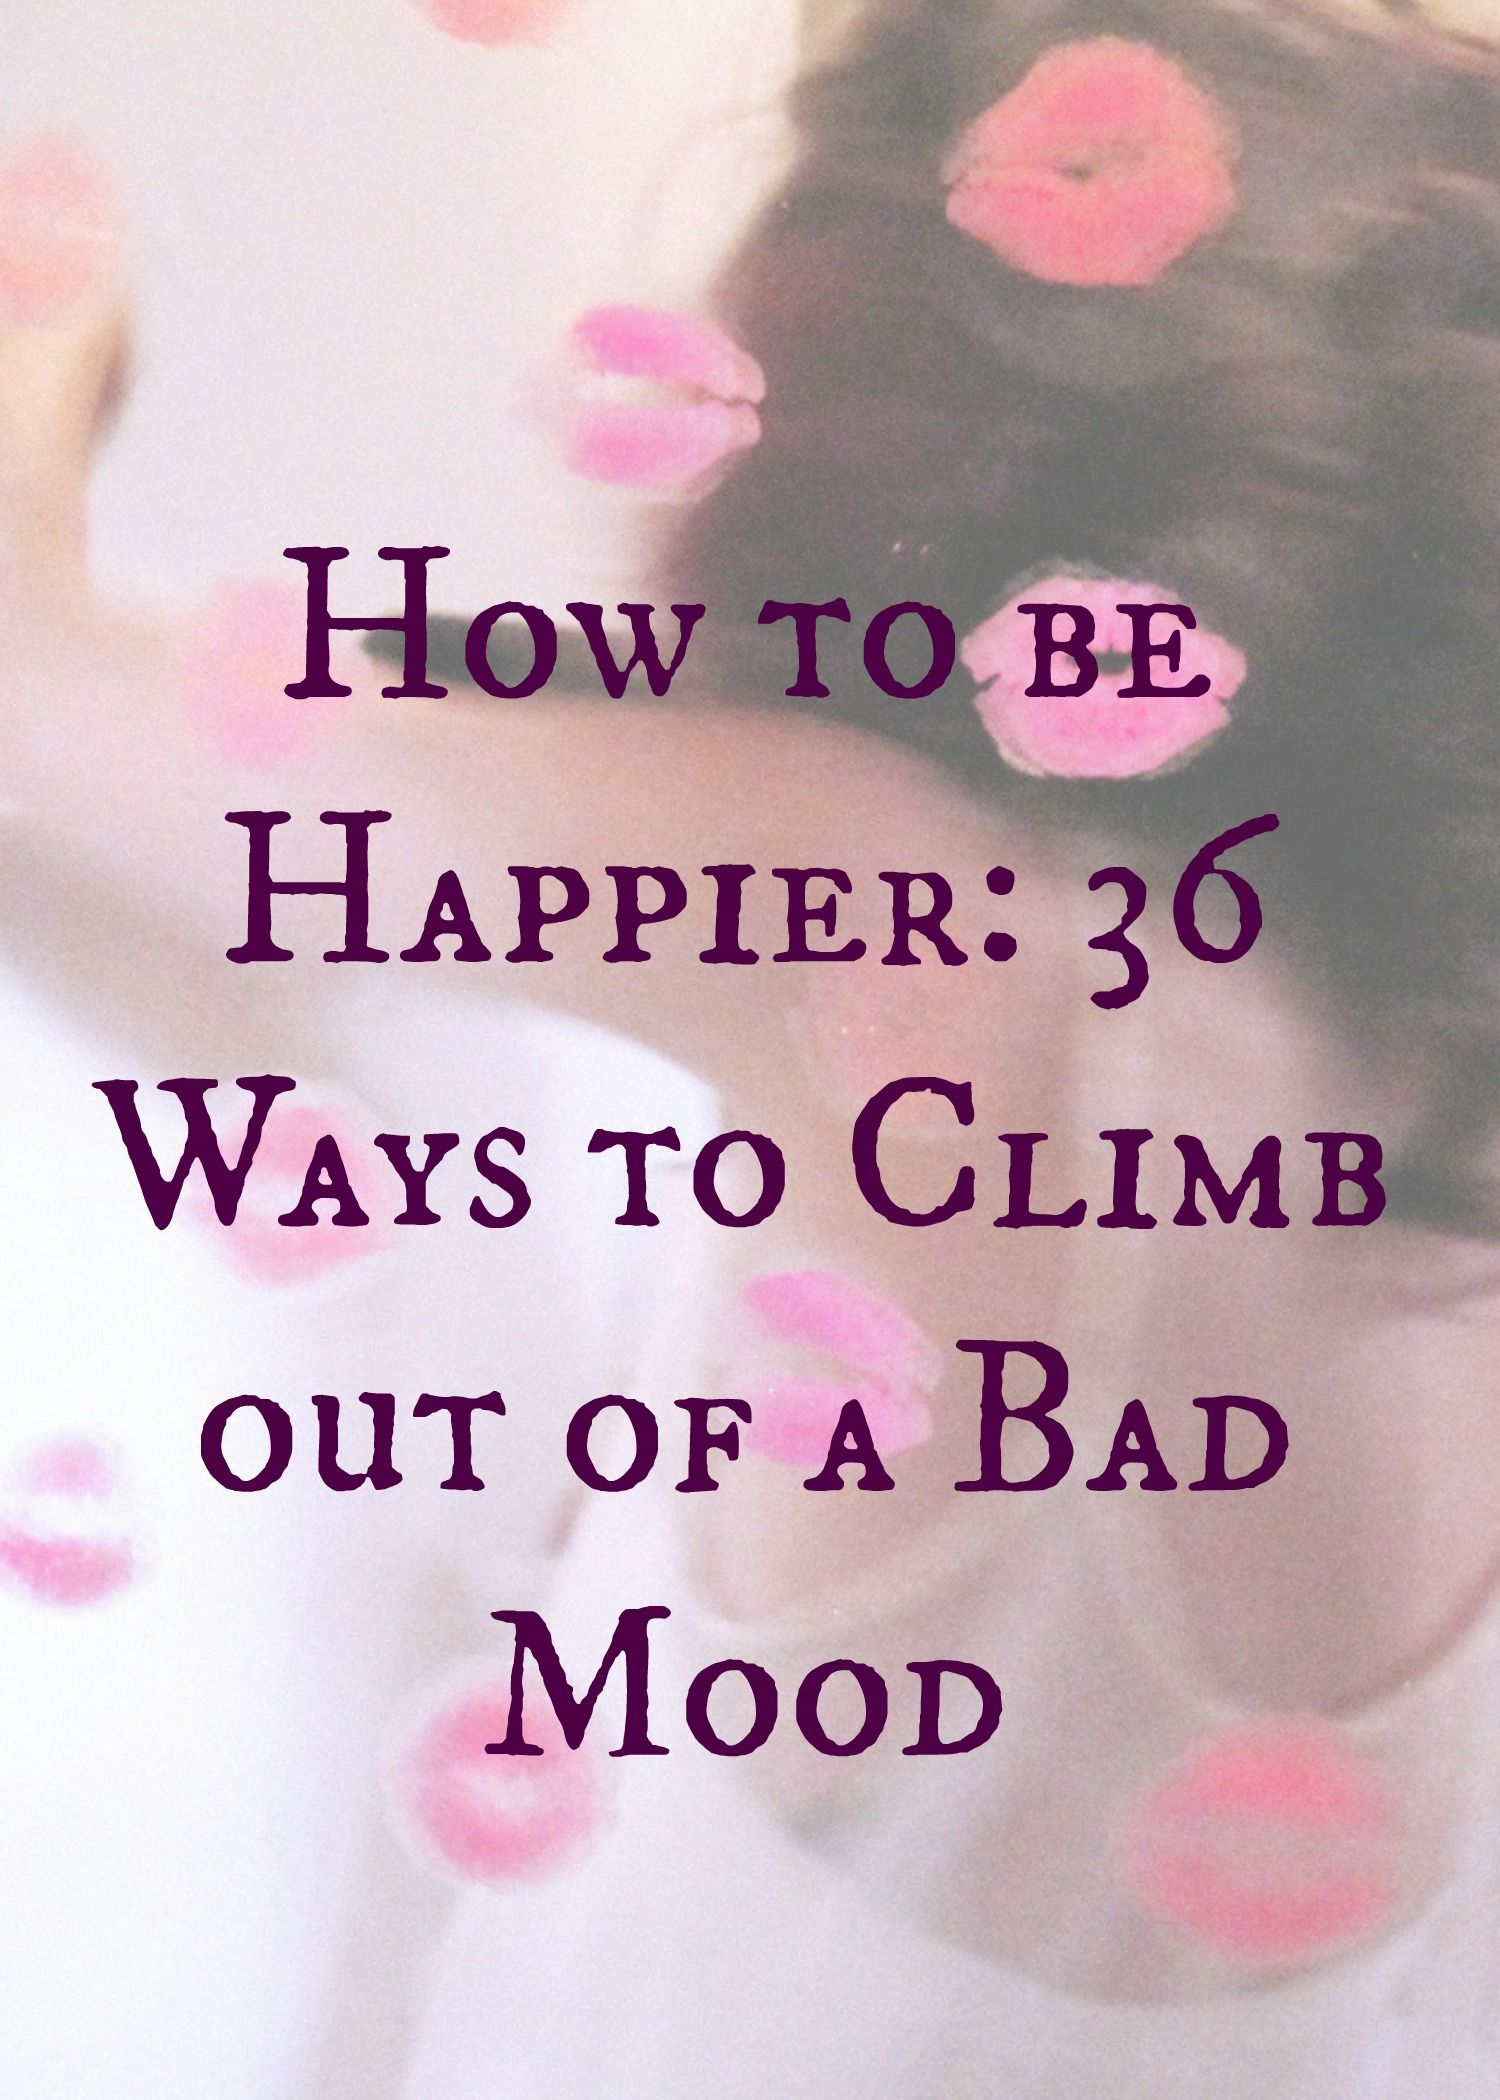 How can I be happier?